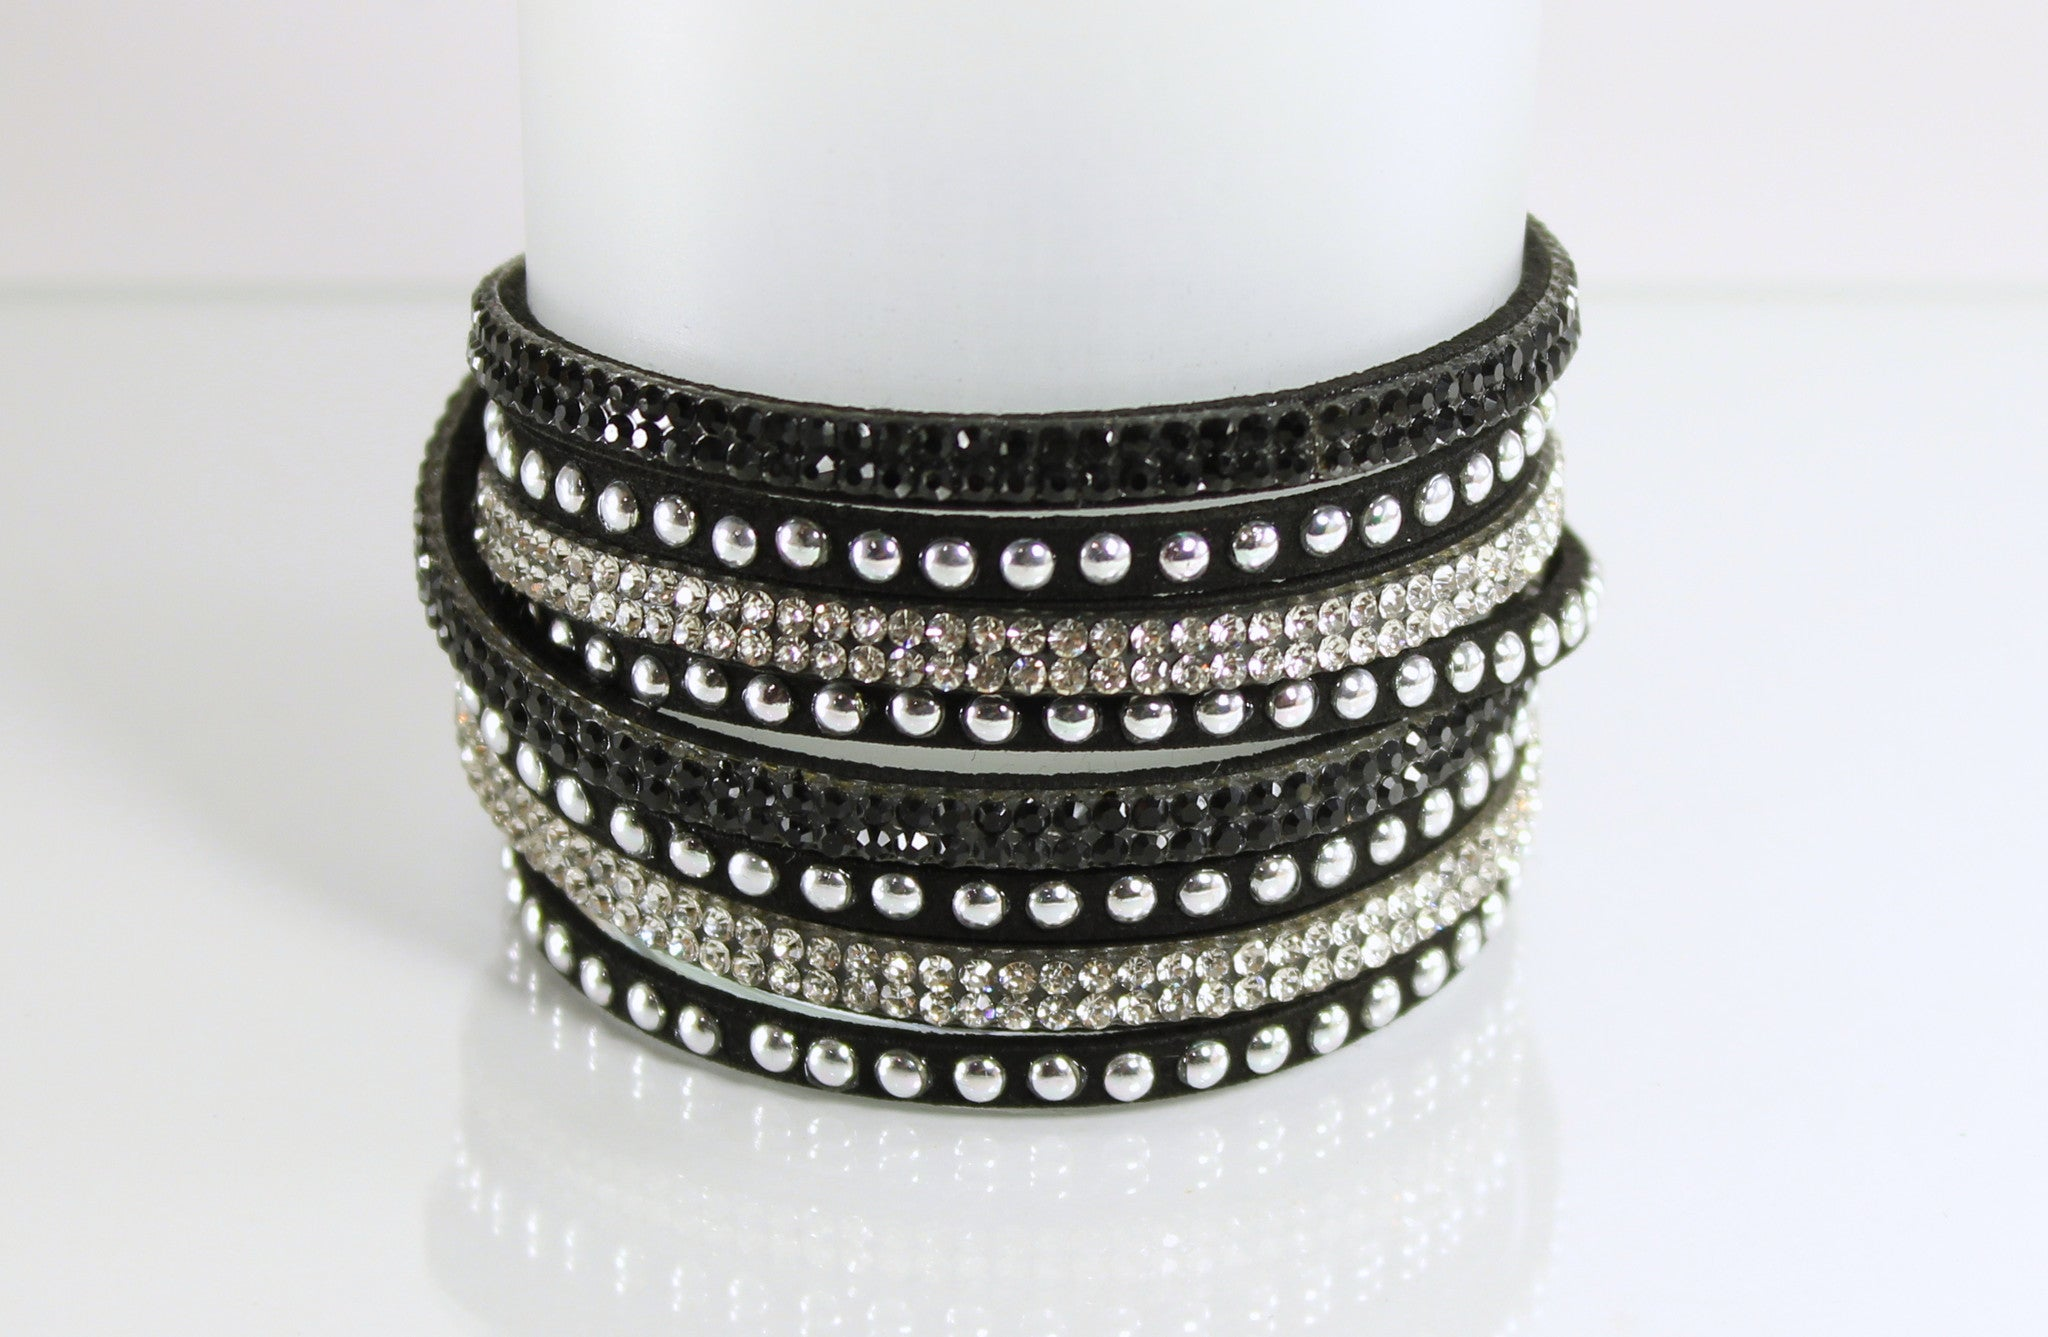 Black and Silver Rhinestone Wrap Bracelet